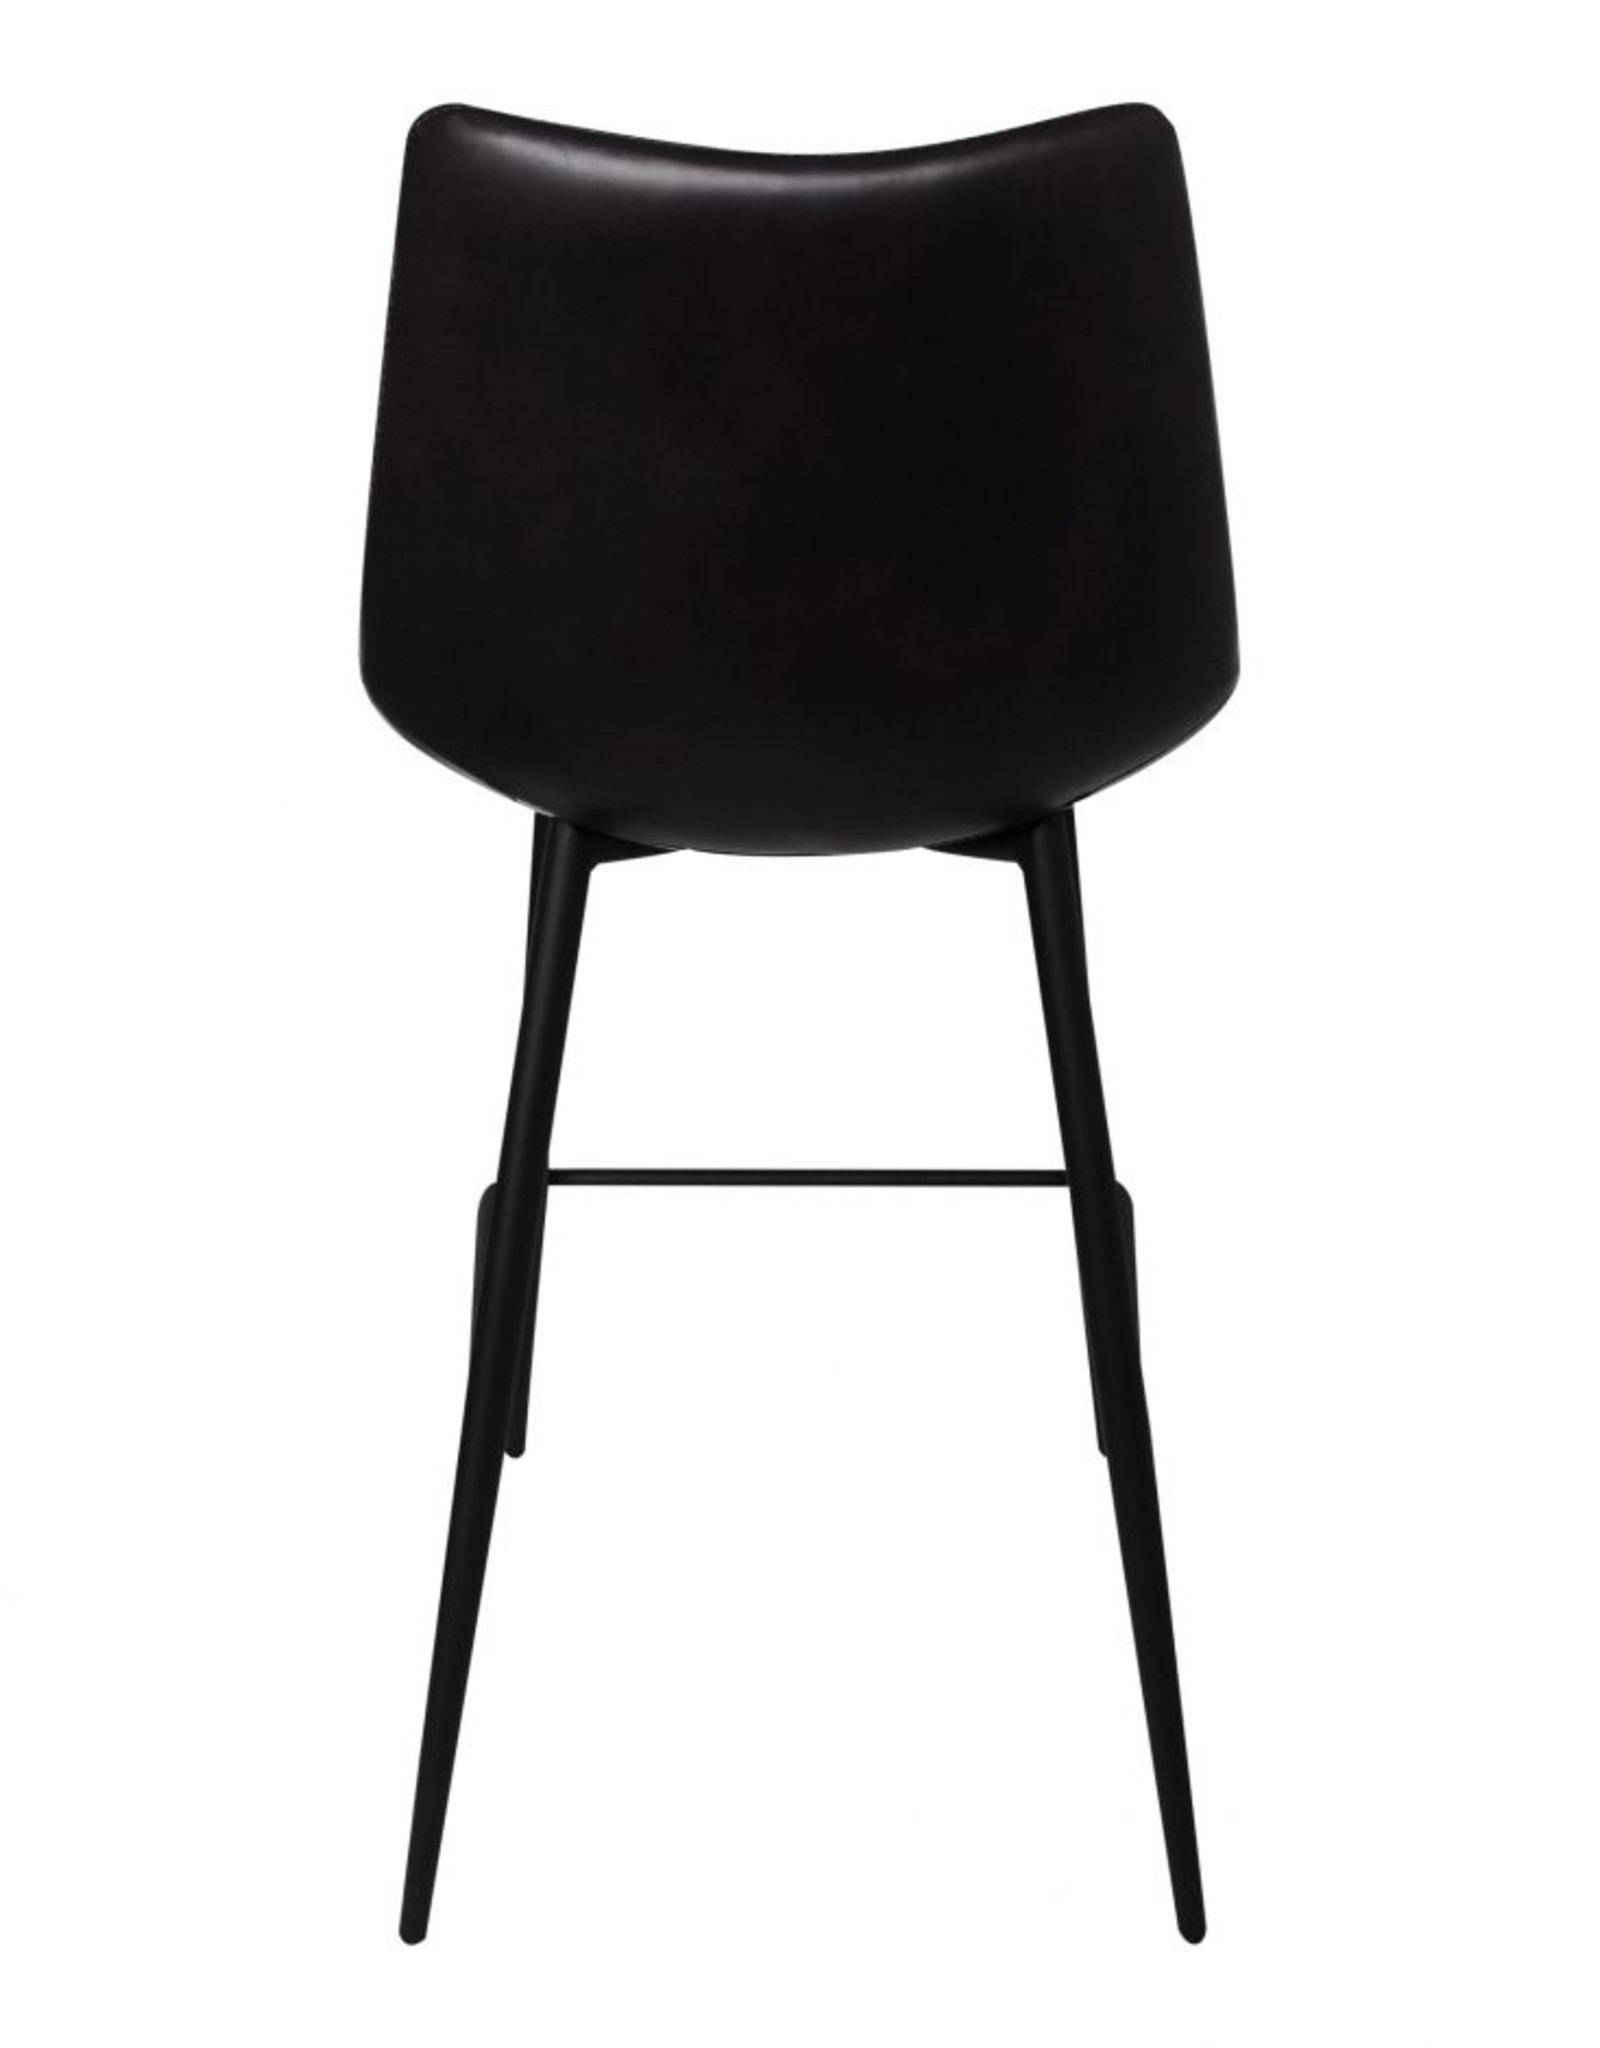 Moes Home Collection Moes Alibi Counterstool UU-1002-02 Black